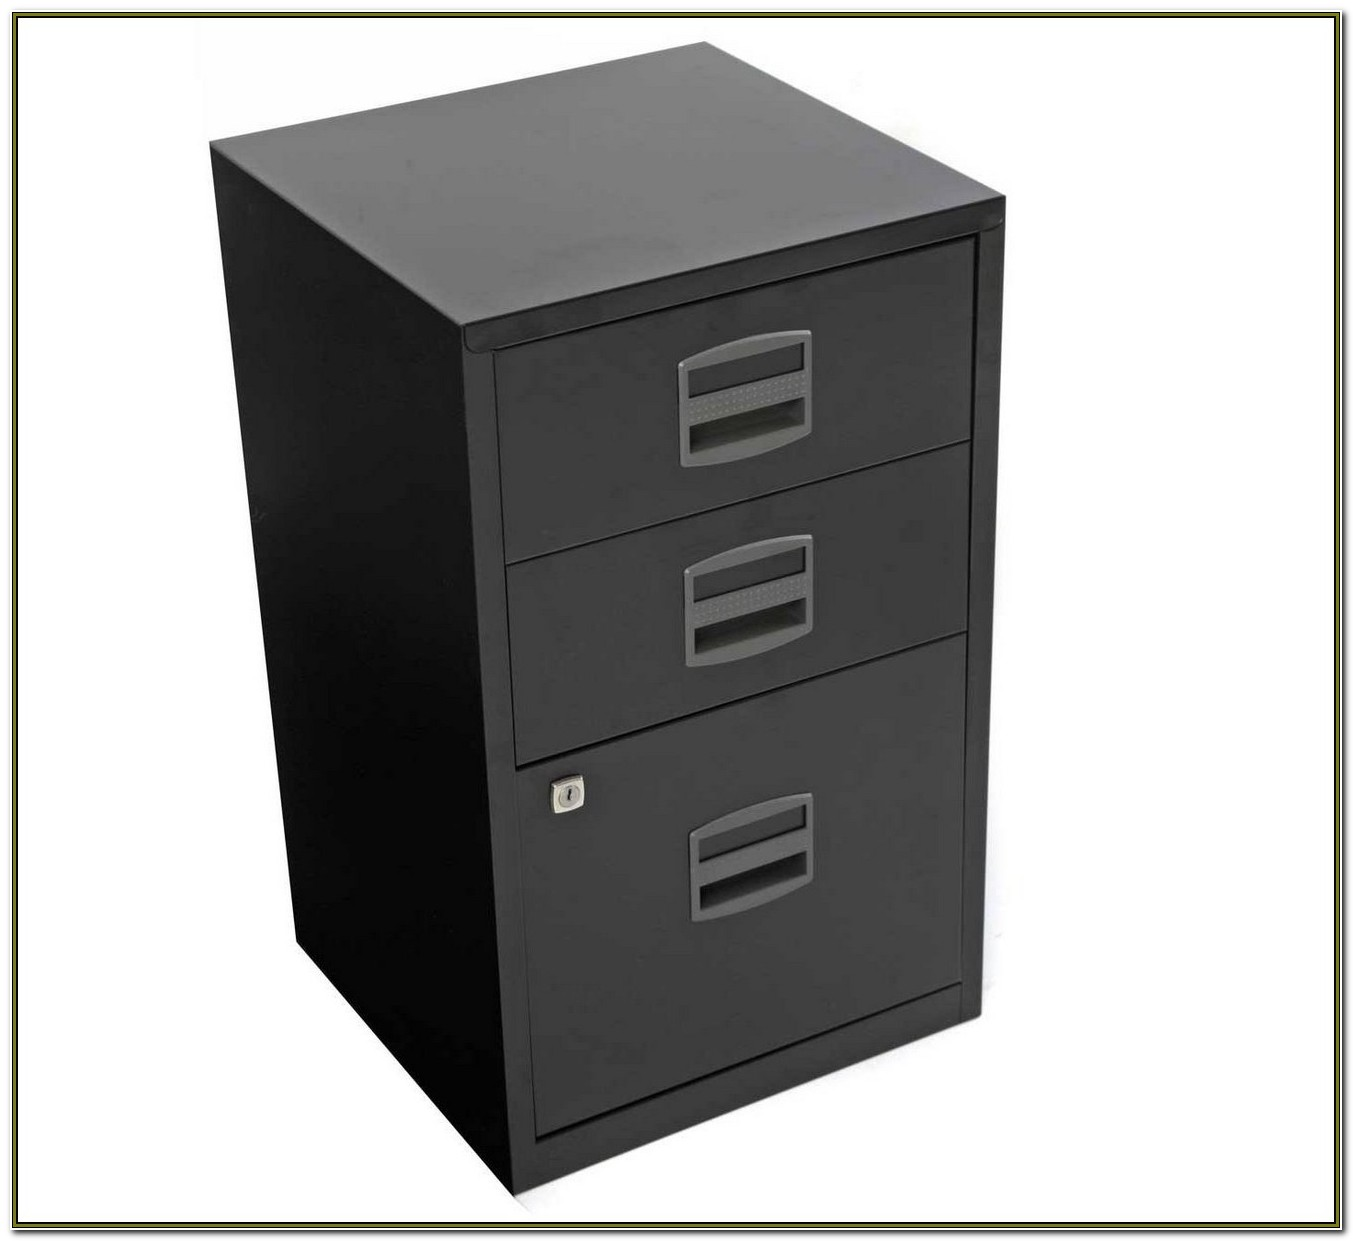 Fireproof Filing Cabinets Amazon